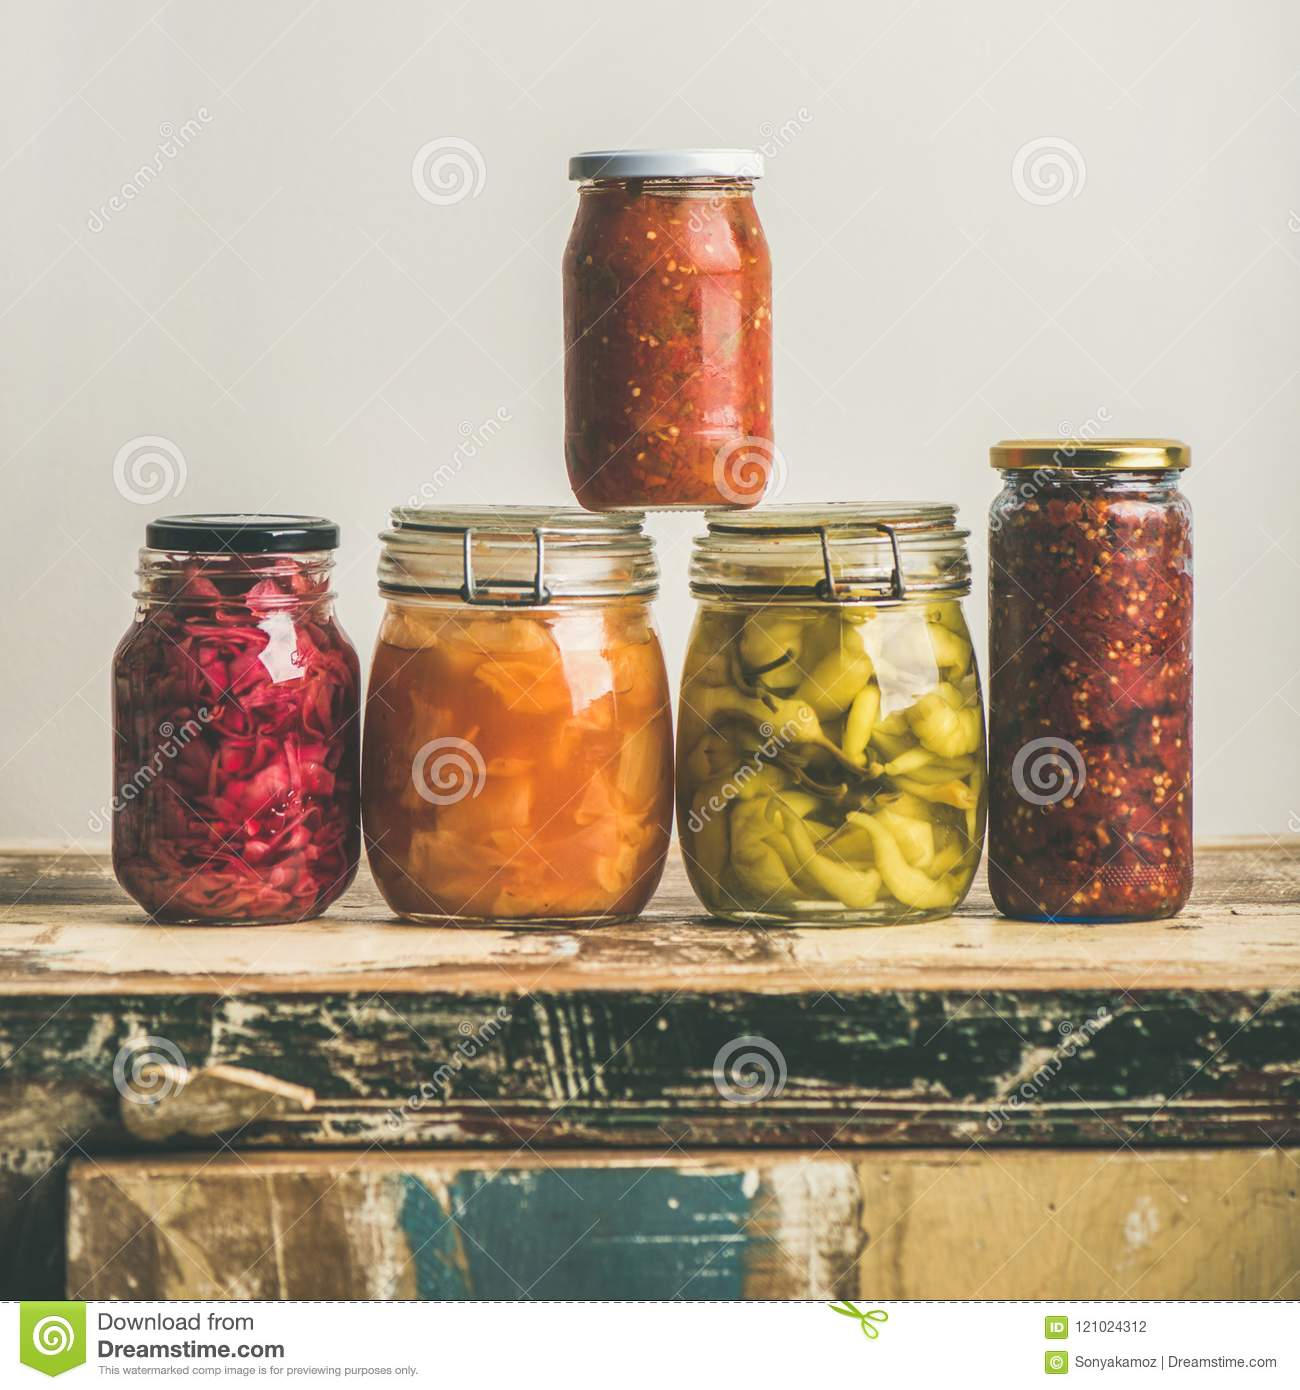 Autumn seasonal pickled or fermented colorful vegetables, square crop